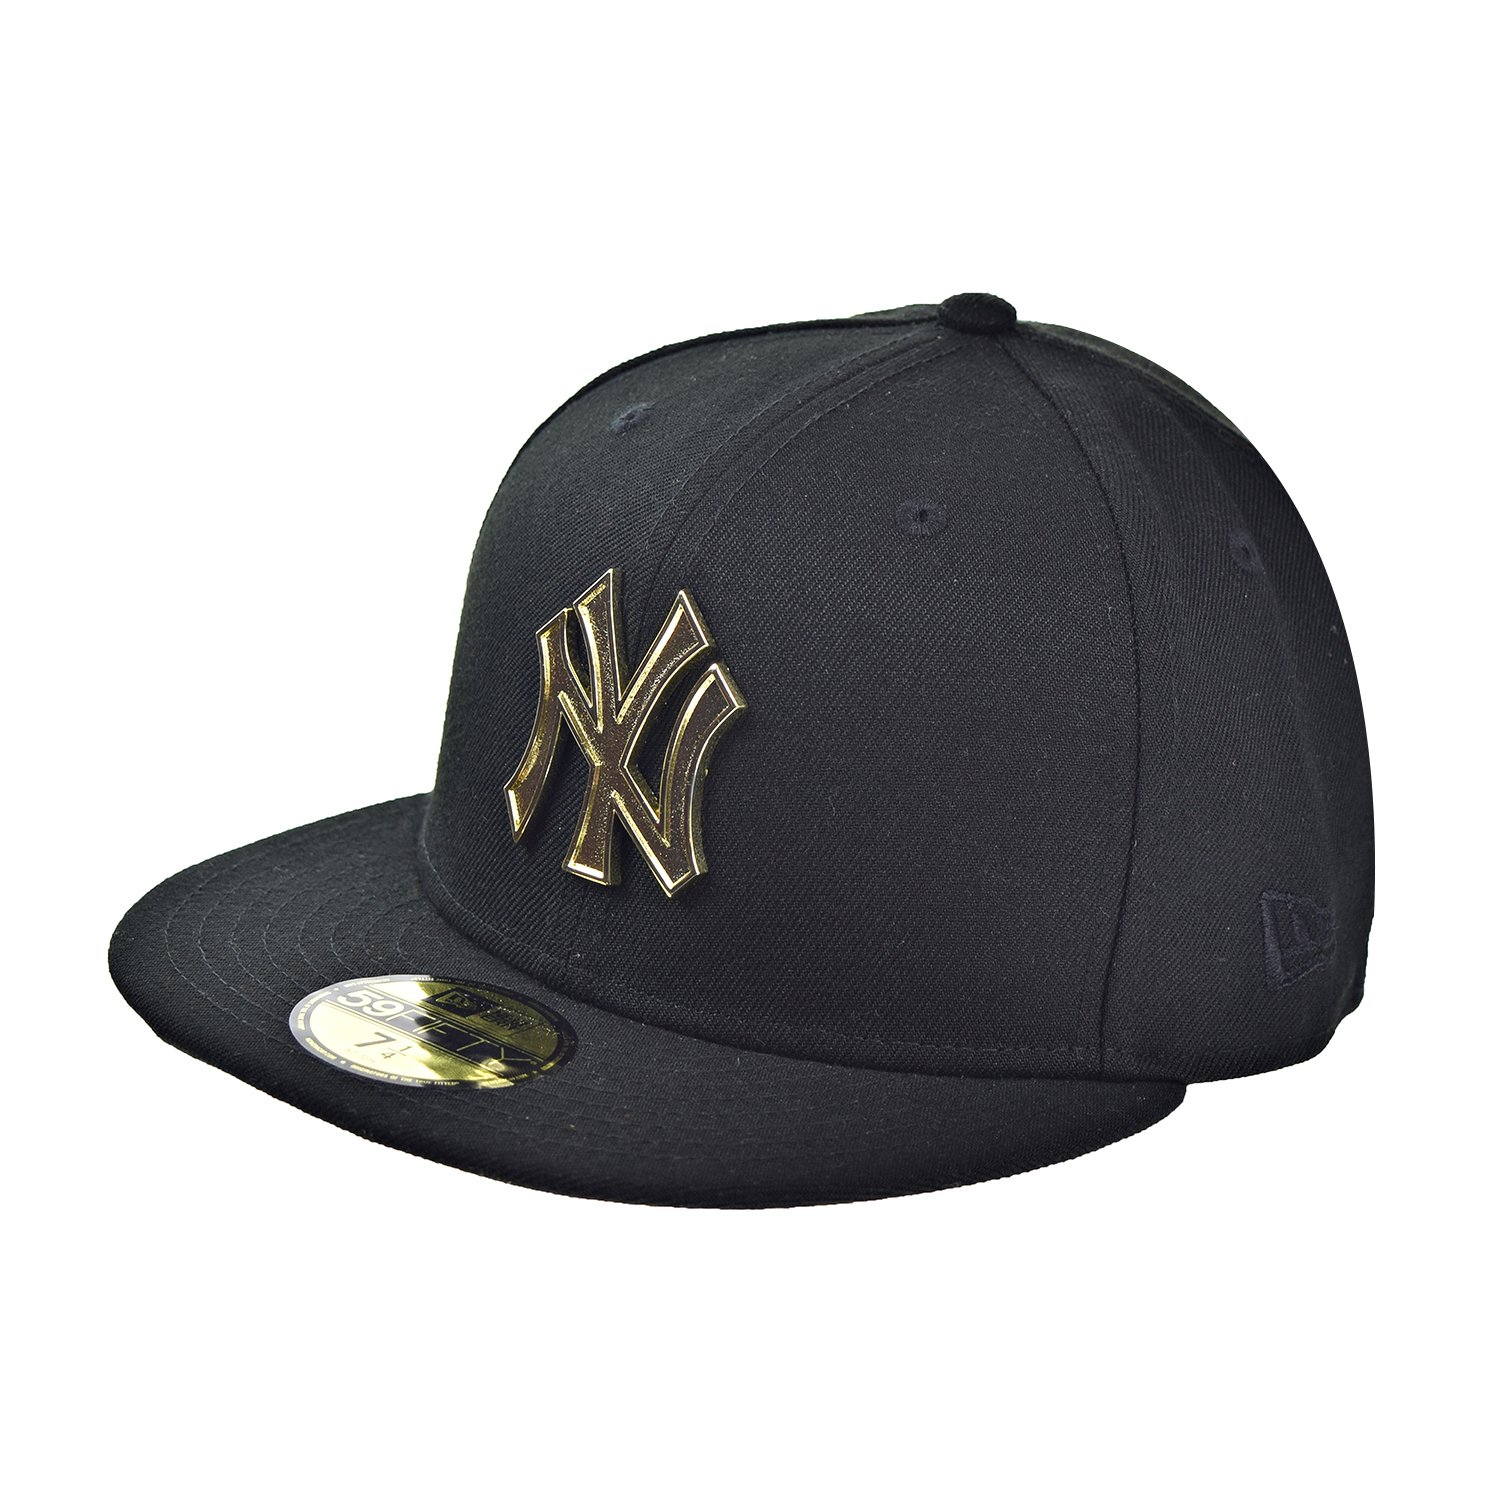 3762c927f ... discount amazon new era new york yankees metal logo 59fifty mens fitted  hat cap black gold